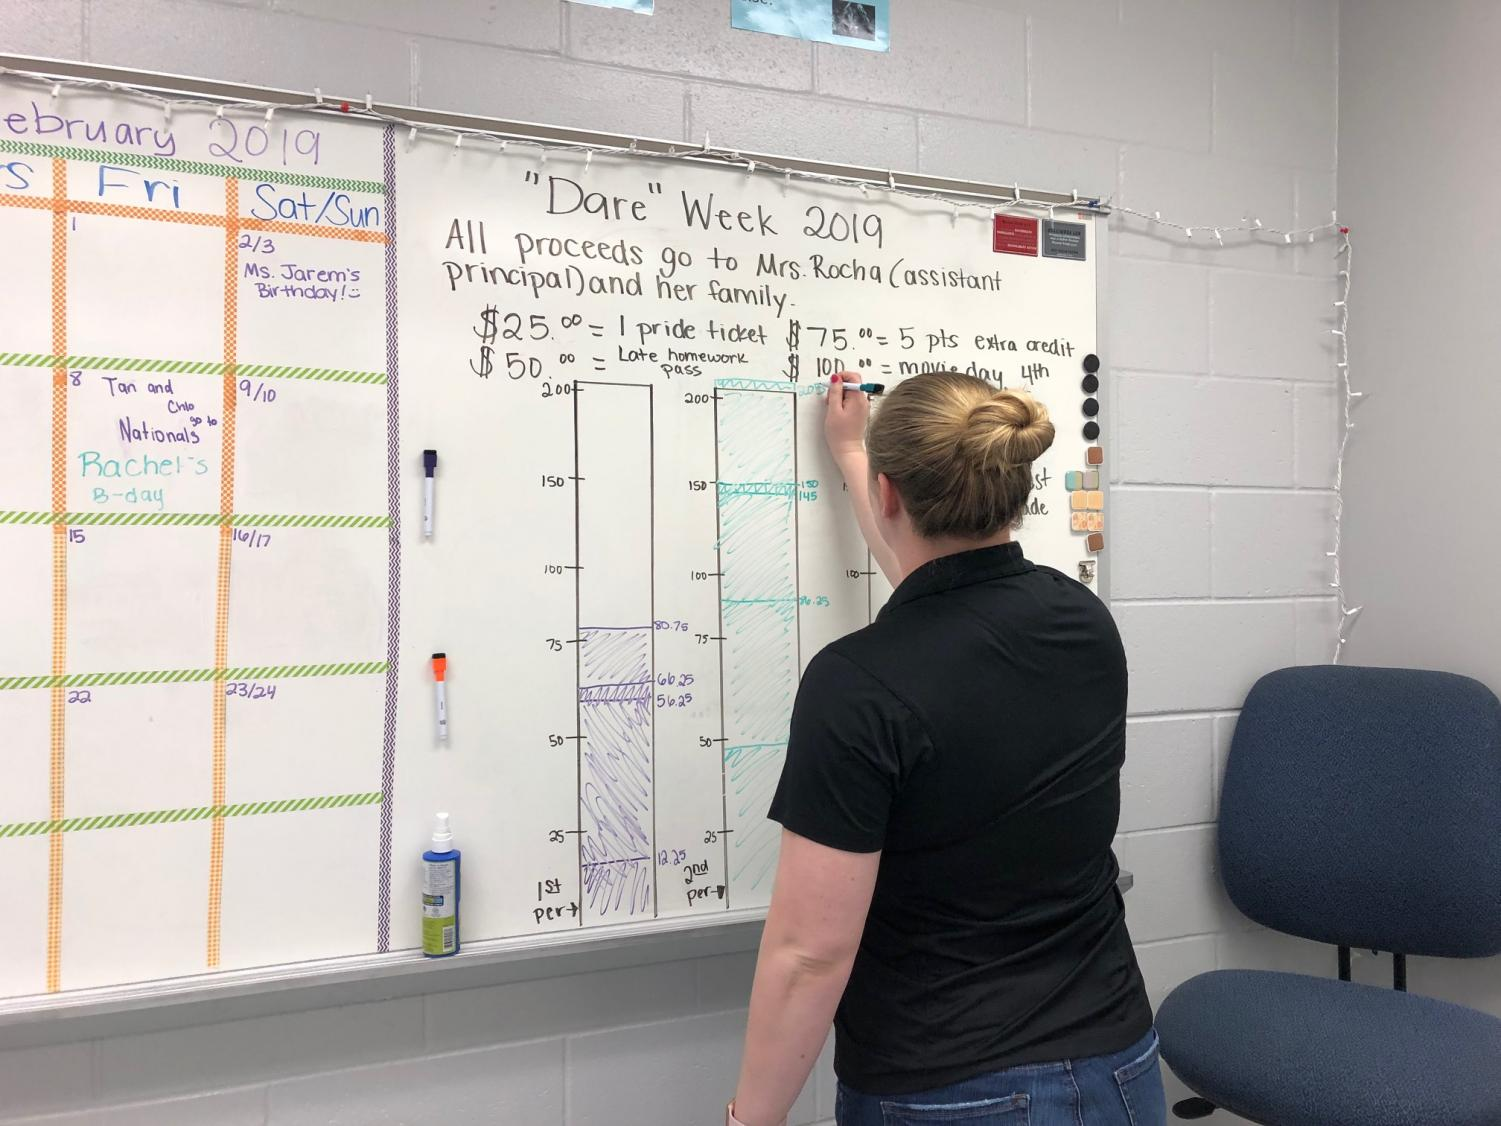 Leadership teacher Sarah Jarem makes the final changes to her classes' donations. She was tracking all of them throughout DARE Week.